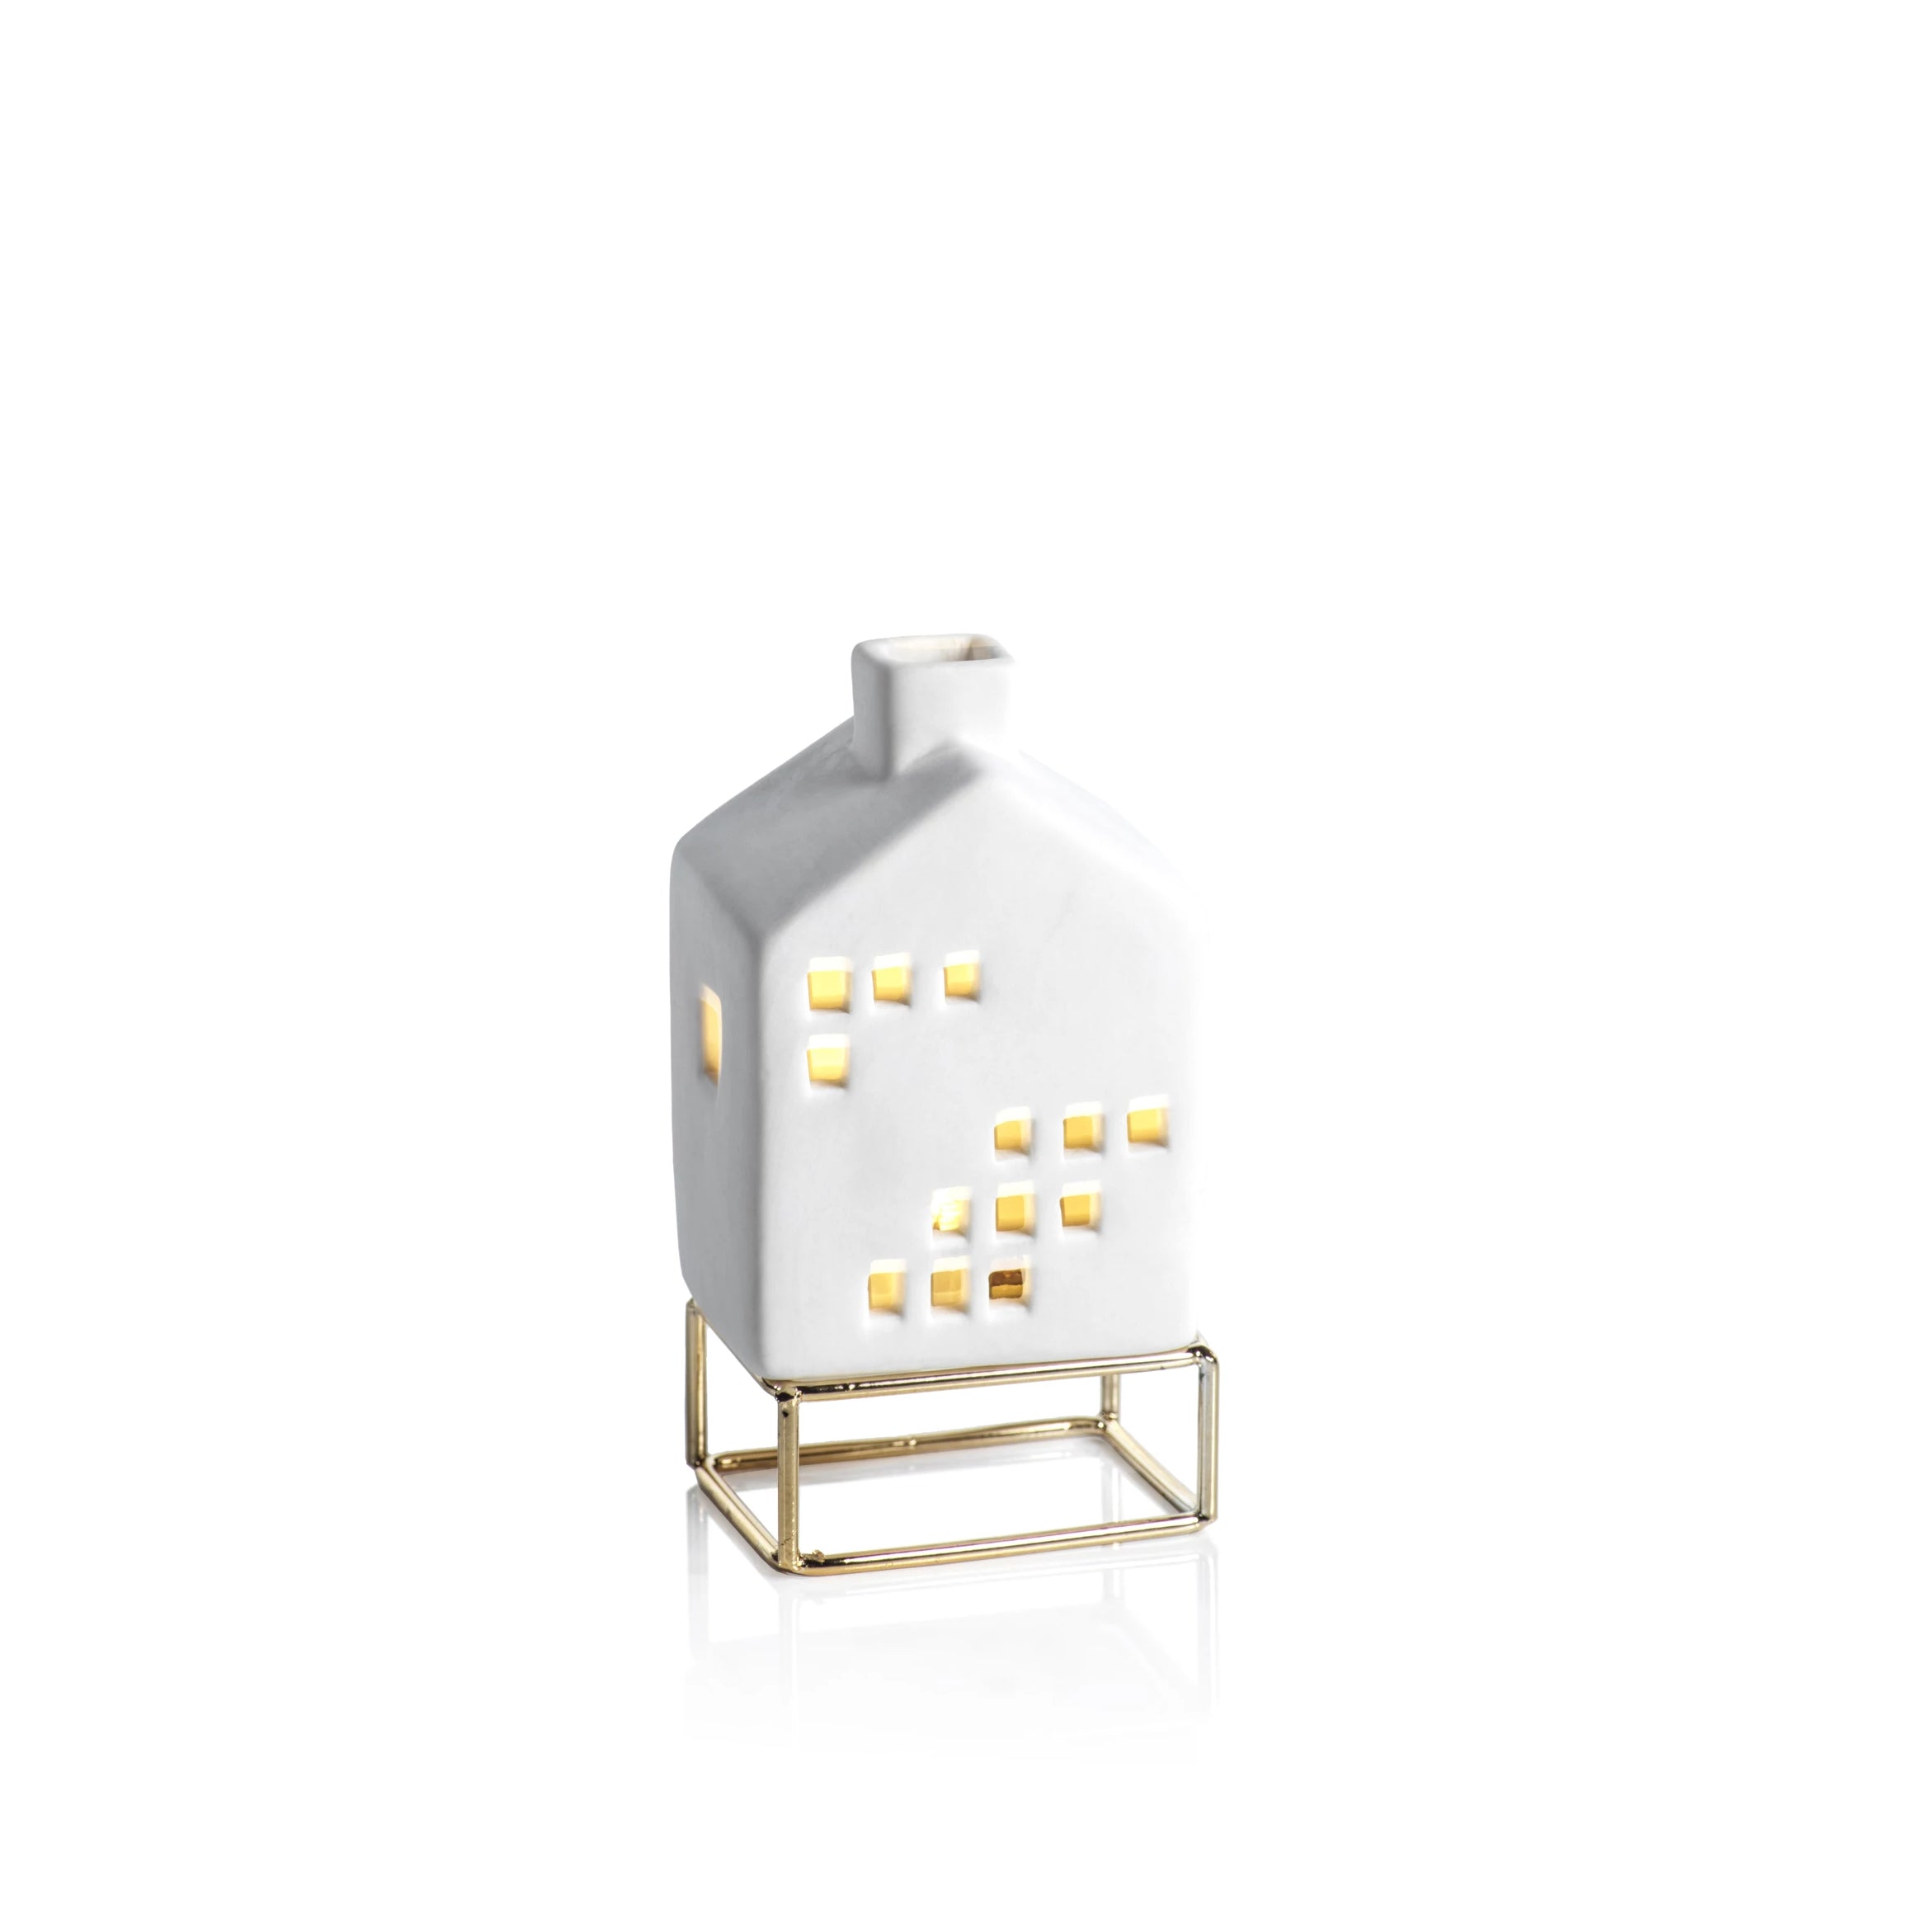 LED Ceramic House on Gold Metal Base - CARLYLE AVENUE